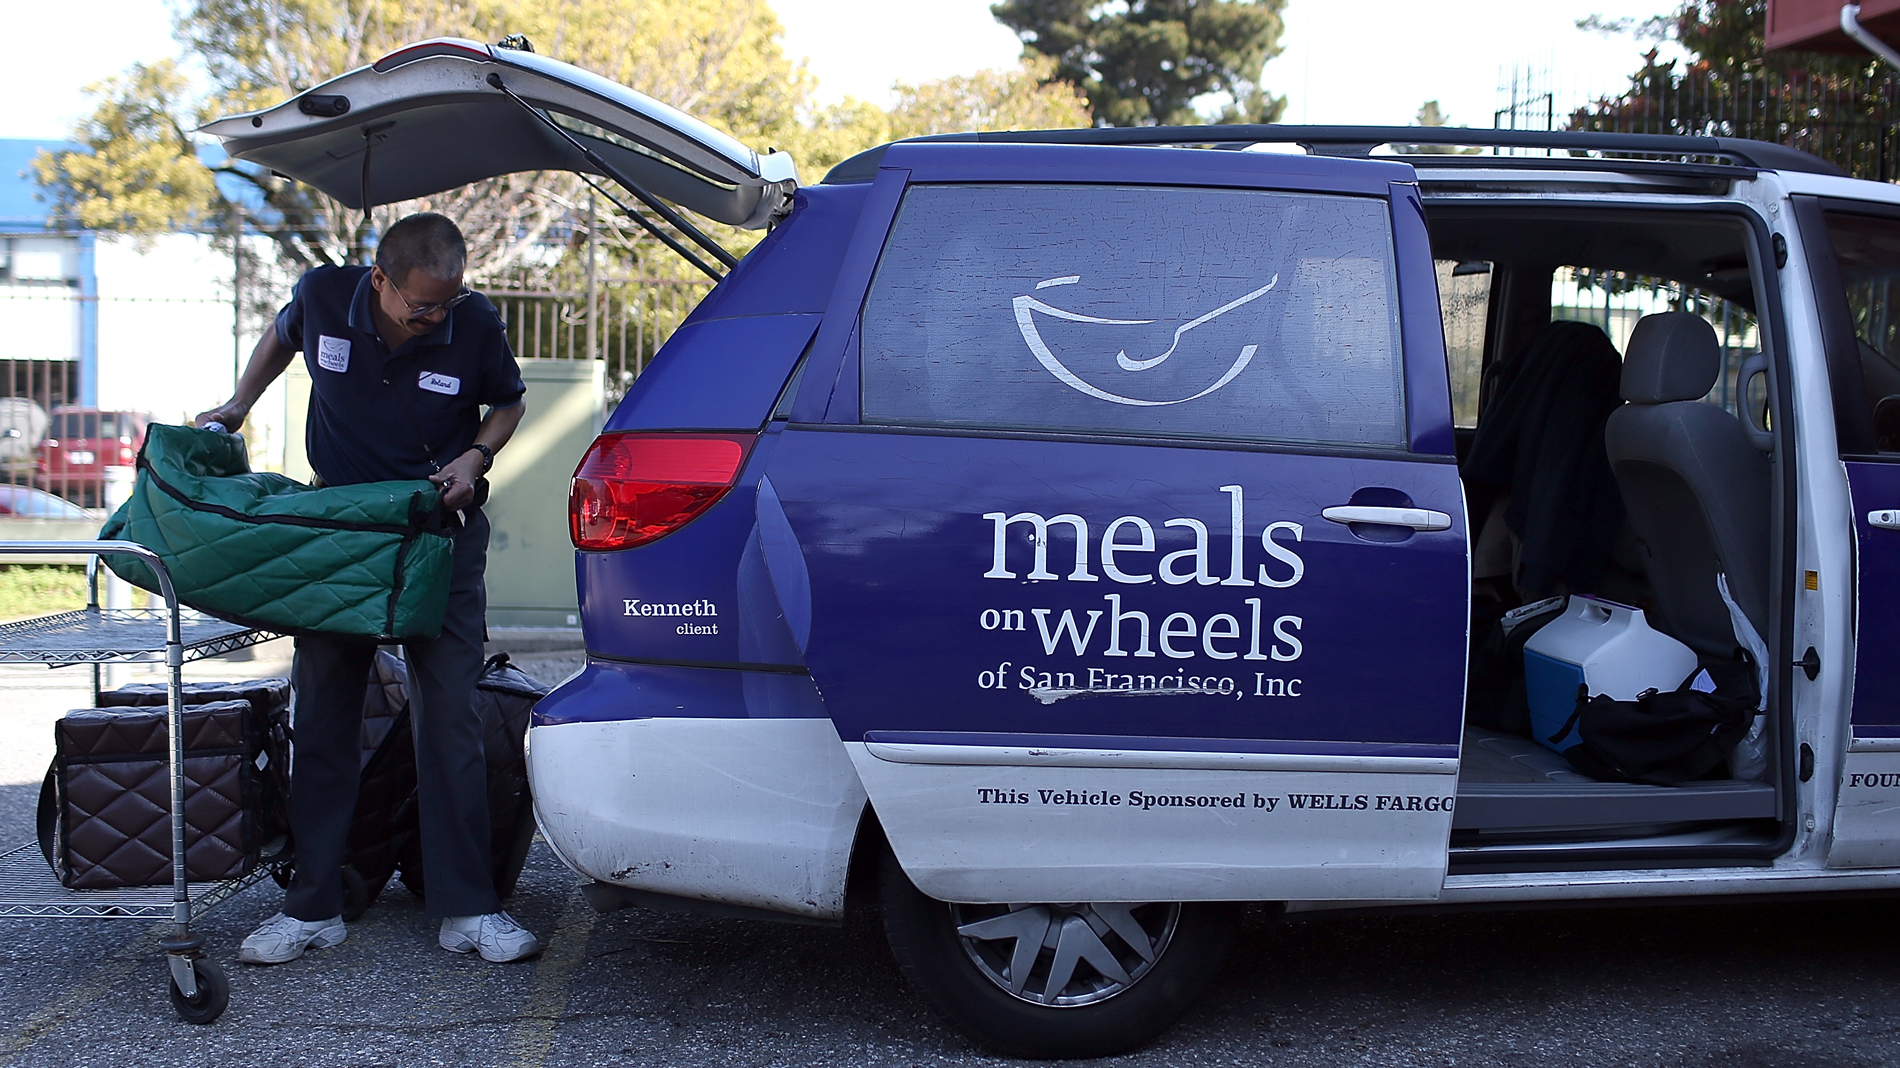 President Trump's New Budget Cuts Funding for Meals on Wheels